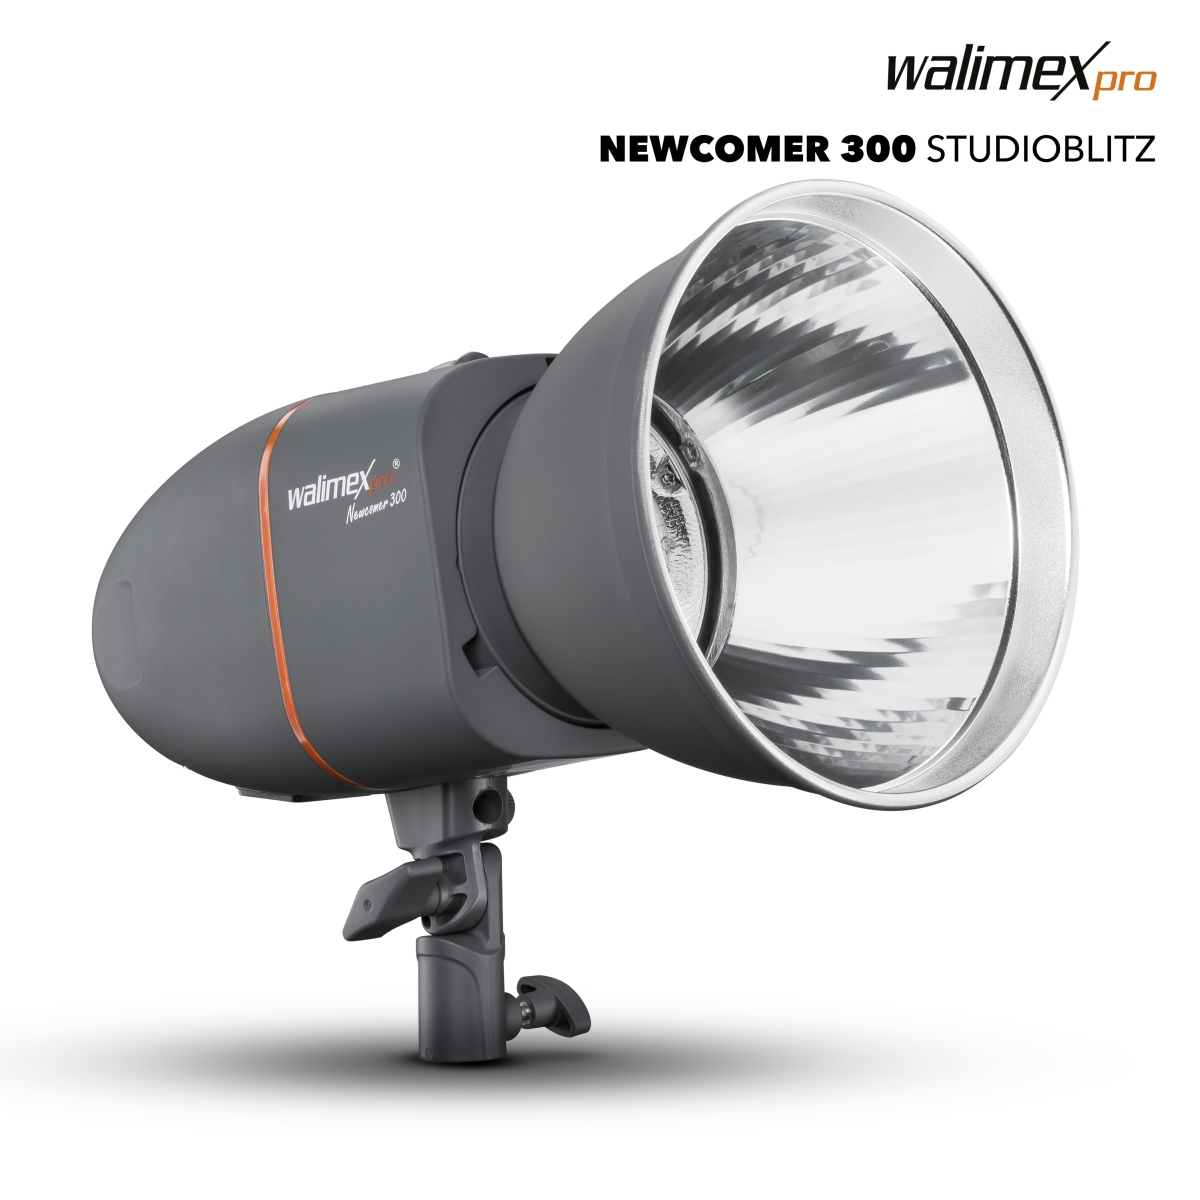 Walimex pro Newcomer 300 studio flash